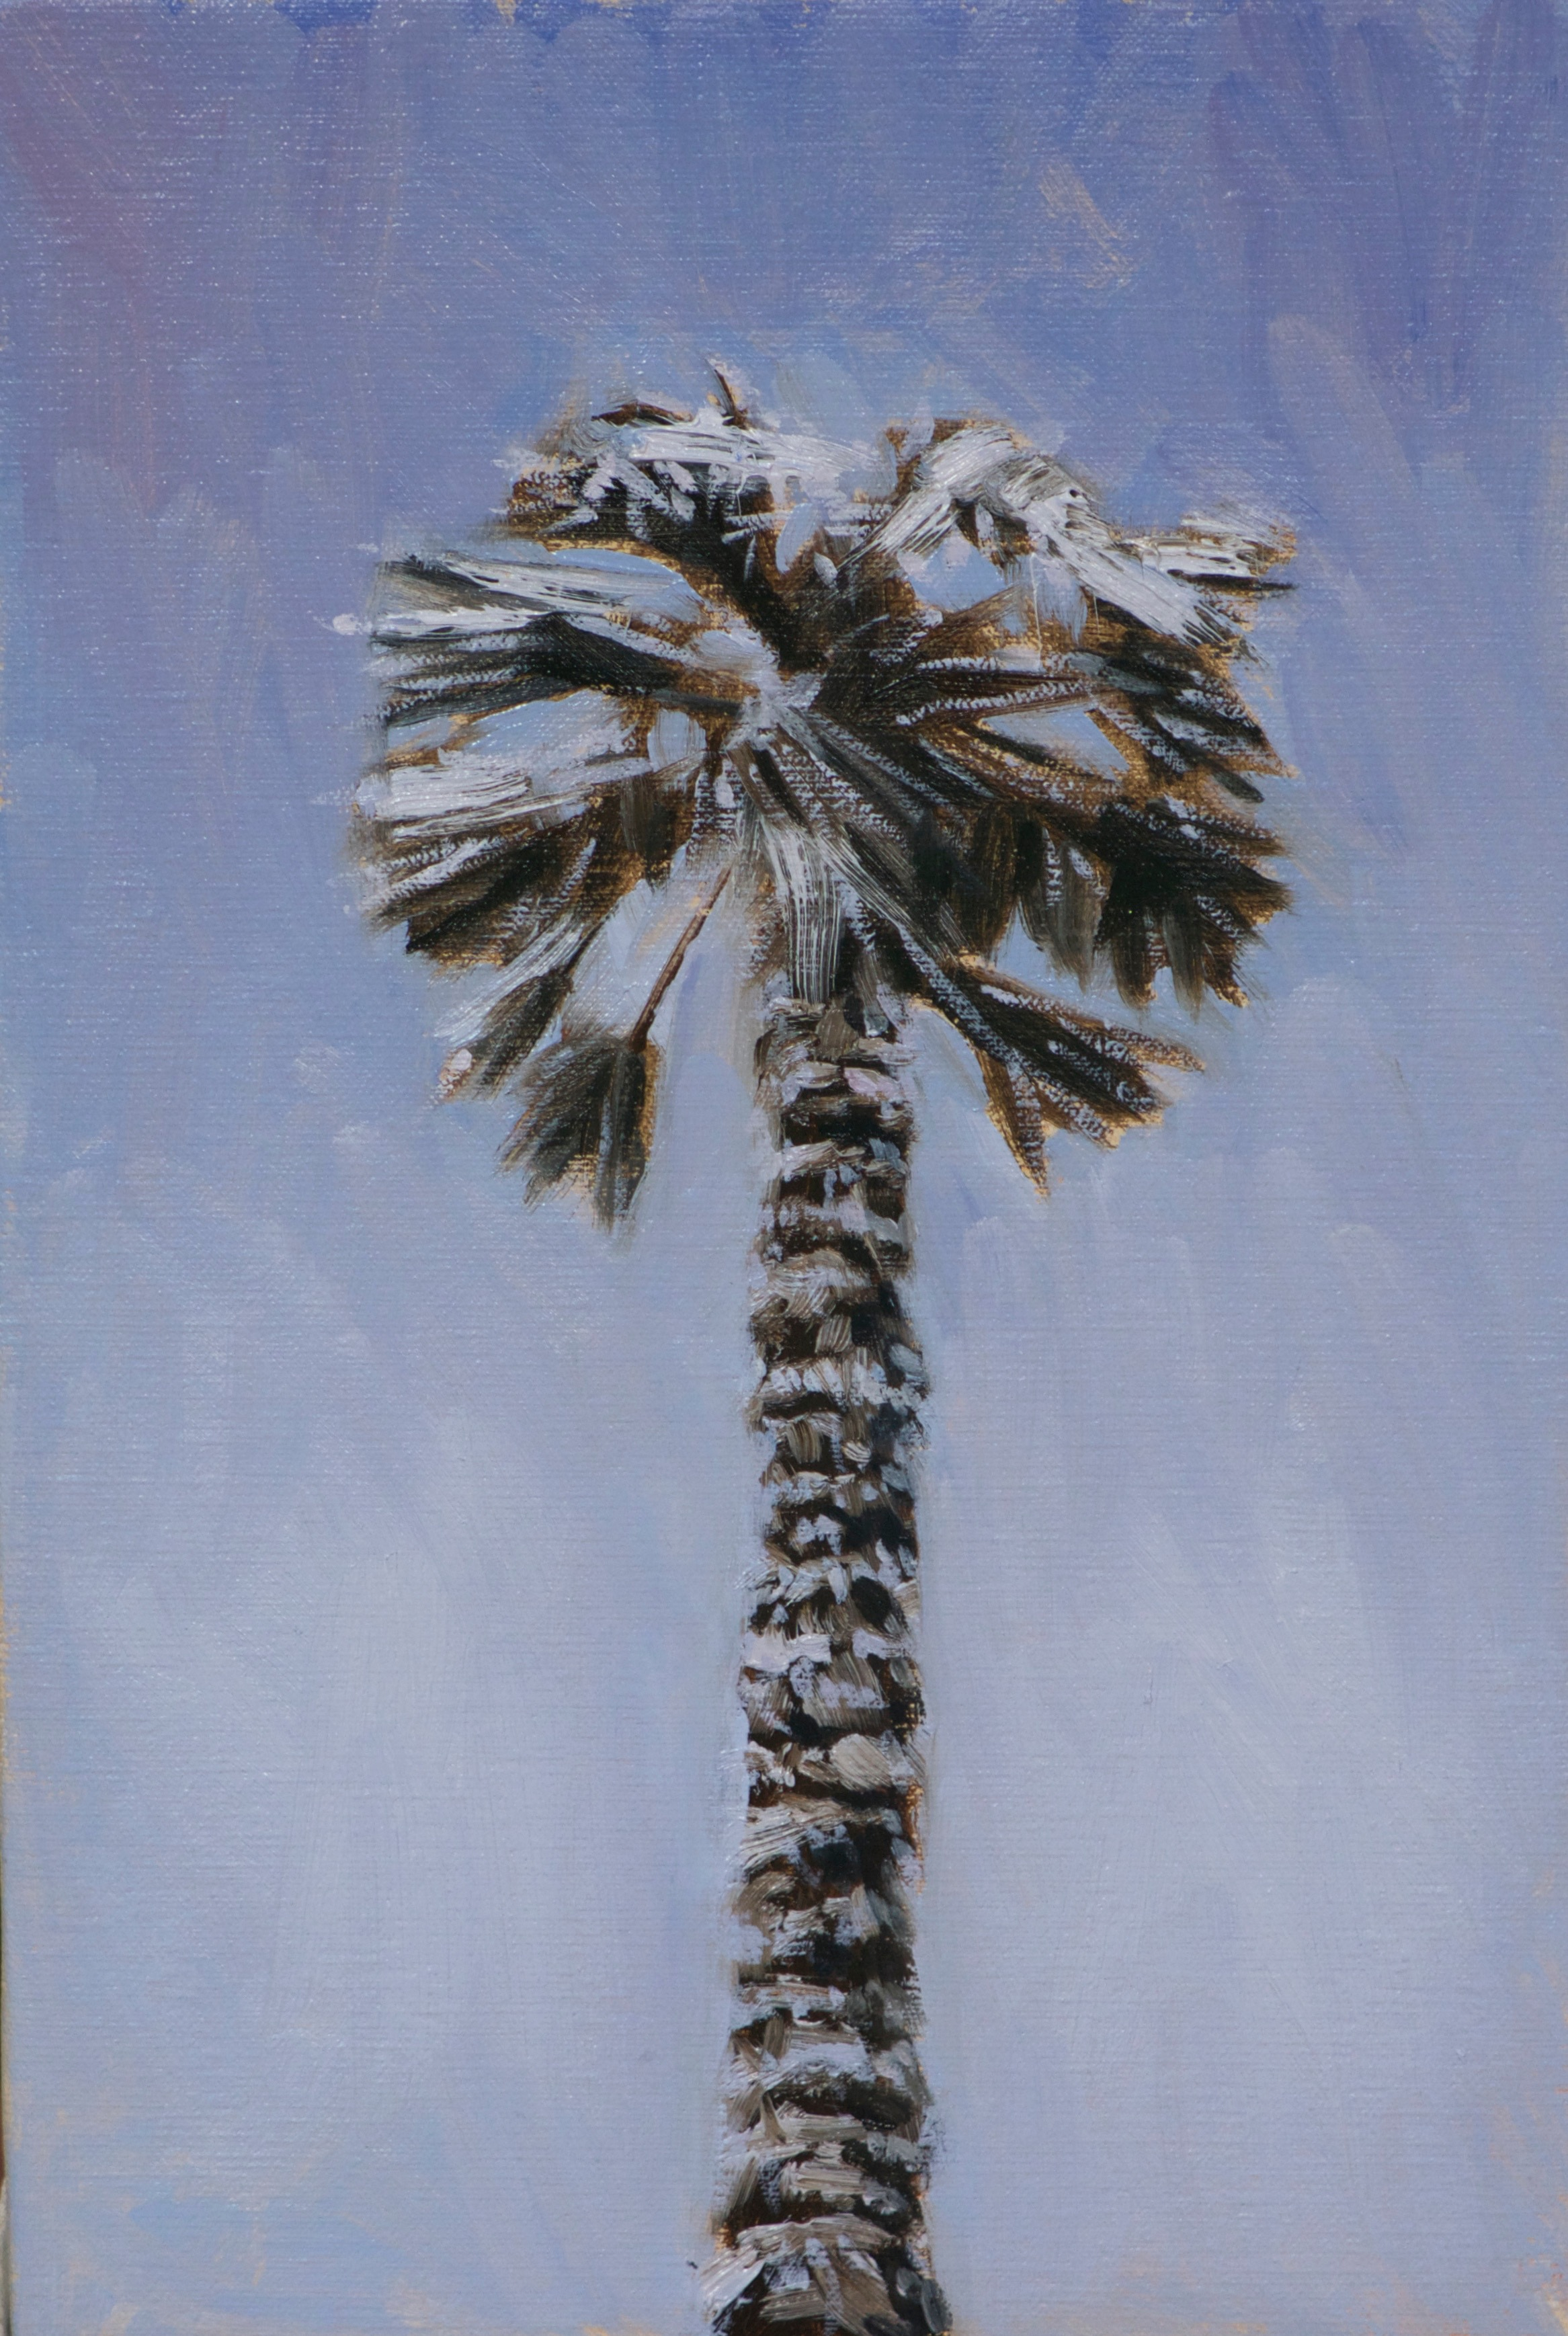 Palm Tree in Snow